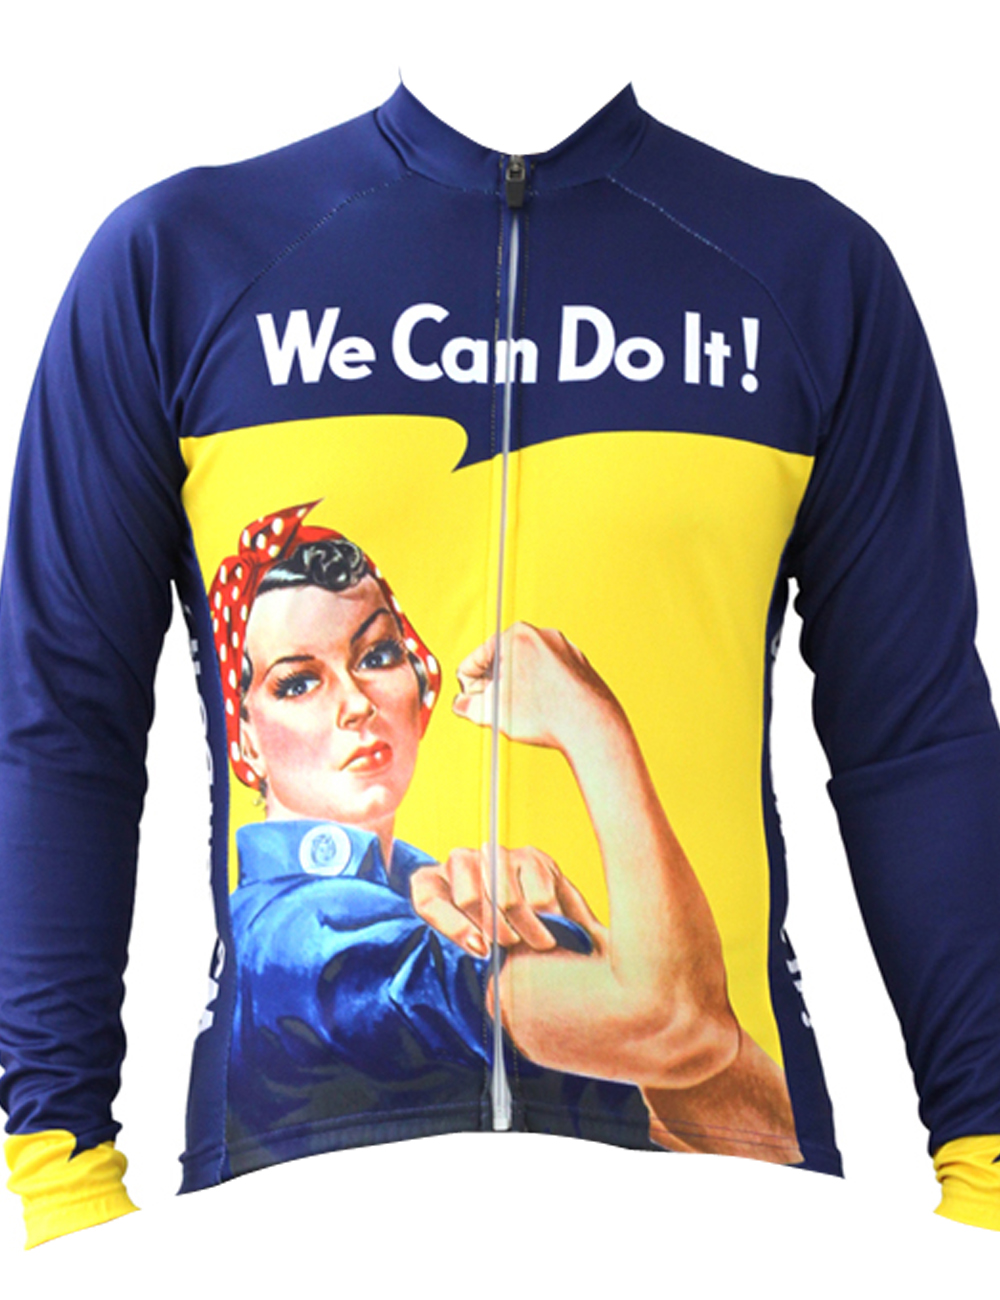 We Can Do It Cycling shirt bike equipment Mens Long Sleeve Cycling Jersey Cycling Clothing Bike Shirt Size 2XS To 6XL ILPALADIN new 17 black red spider mens breathable bike clothing polyester autumn long sleeve cycling jerseys size 2xs to 6xl